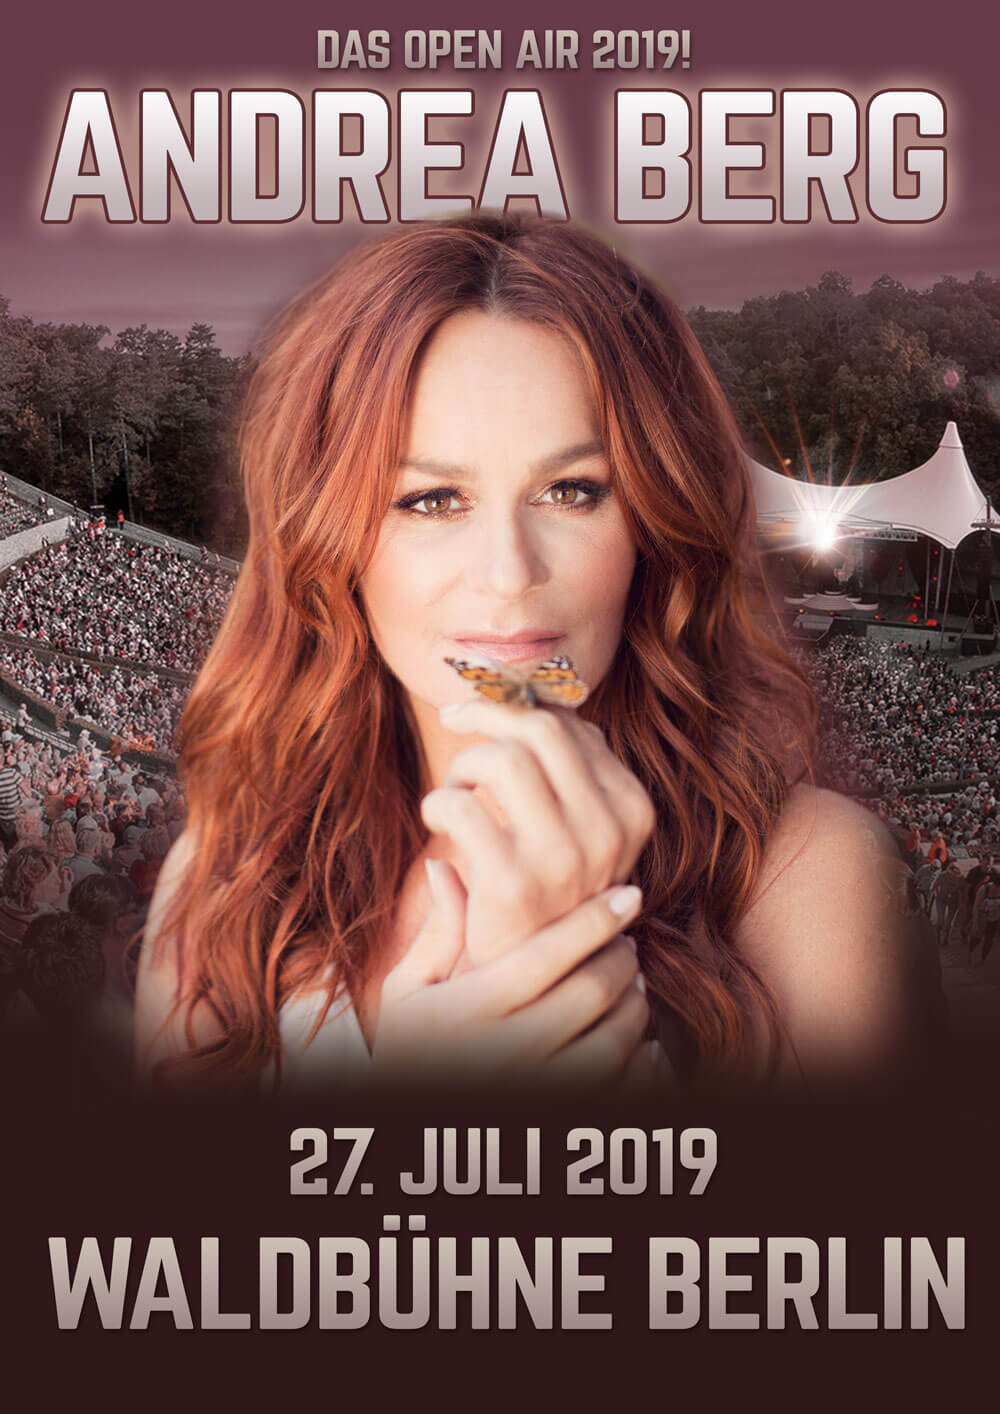 andrea berg live auf der berliner waldb hne am 27 juli. Black Bedroom Furniture Sets. Home Design Ideas